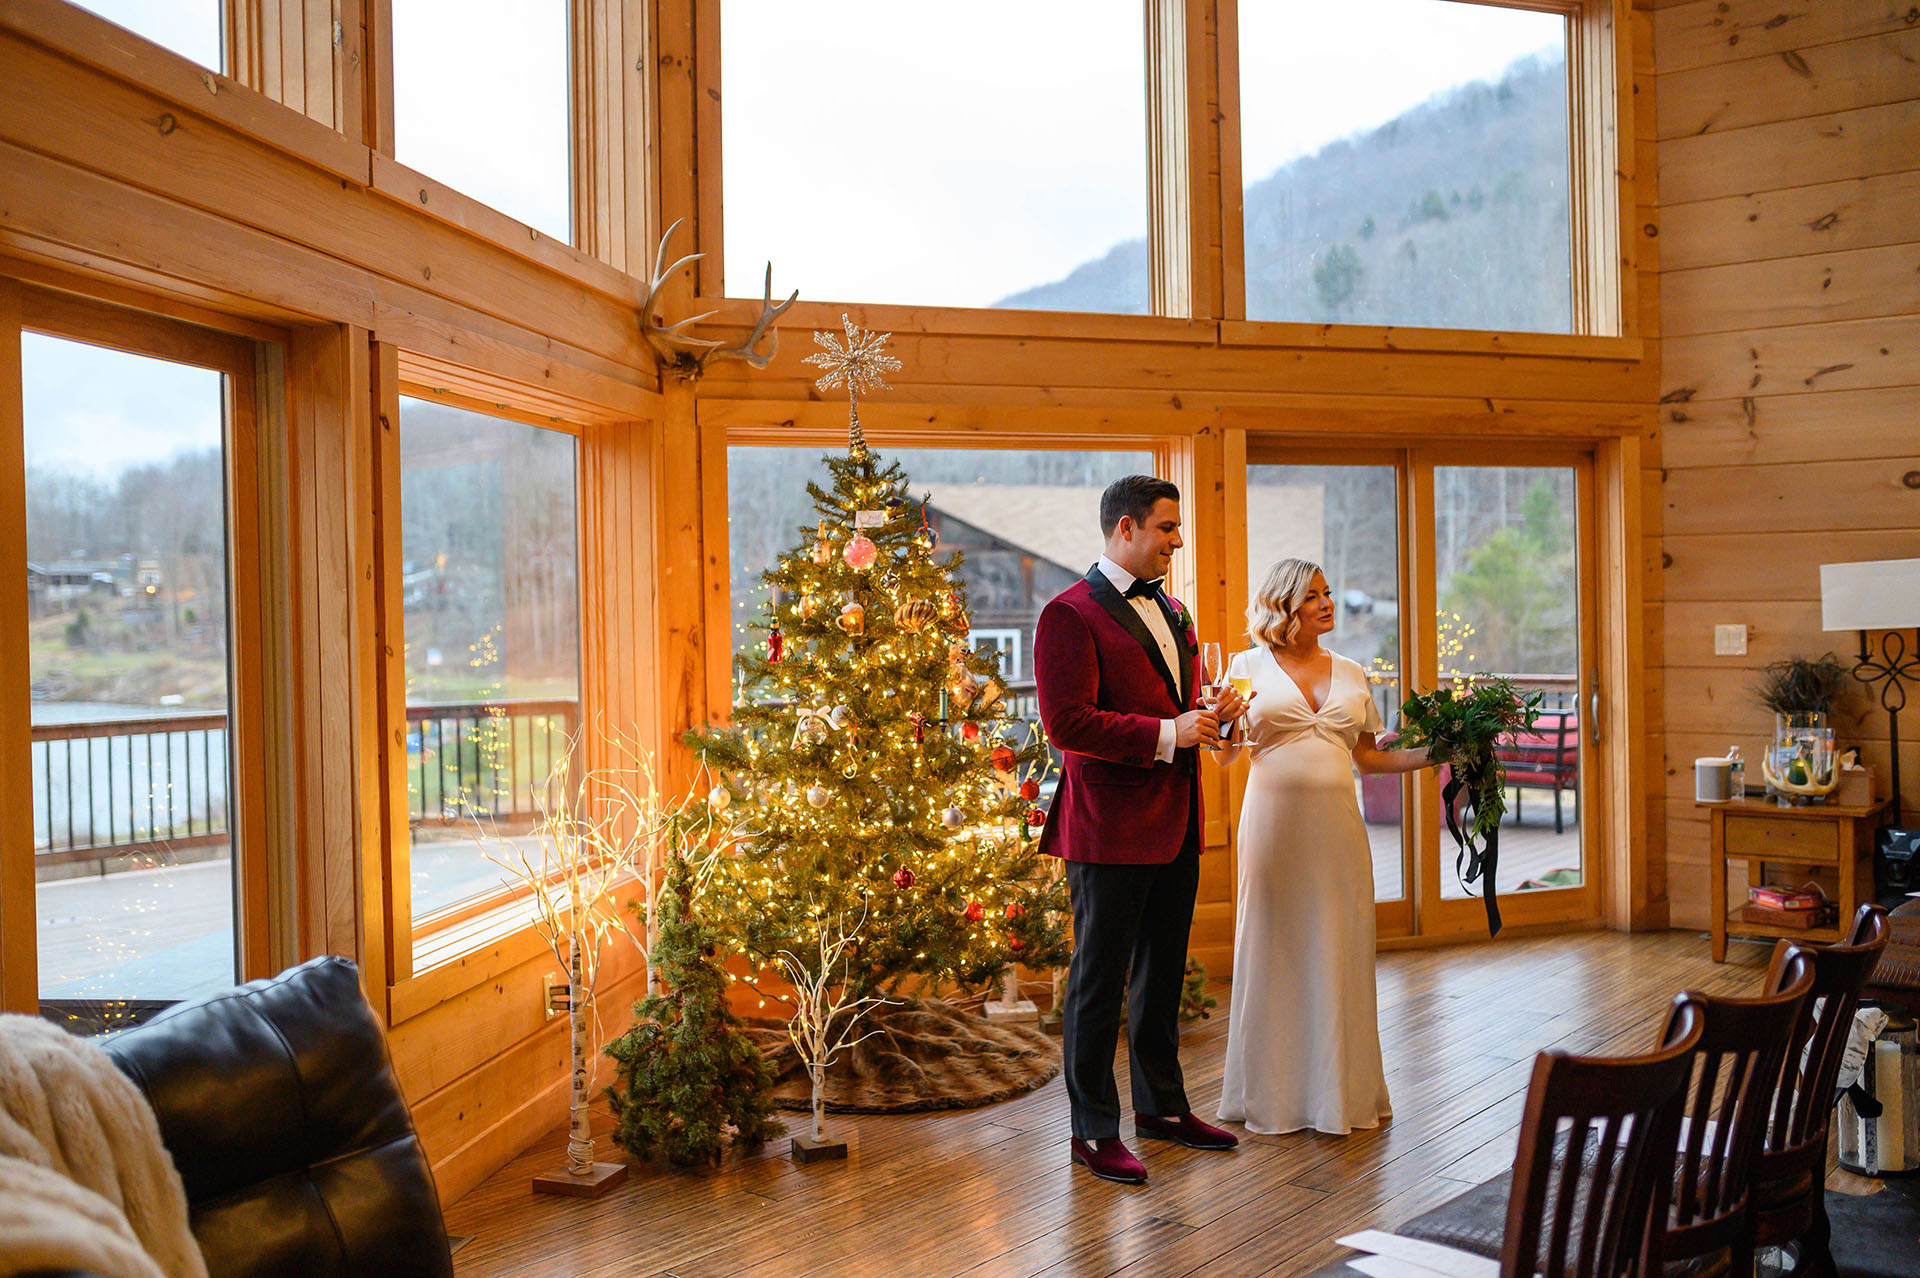 Catskills, NY Airbnb - Wedding Reception Picture | The bride and groom toast their guests for making the long trip, taking covid tests